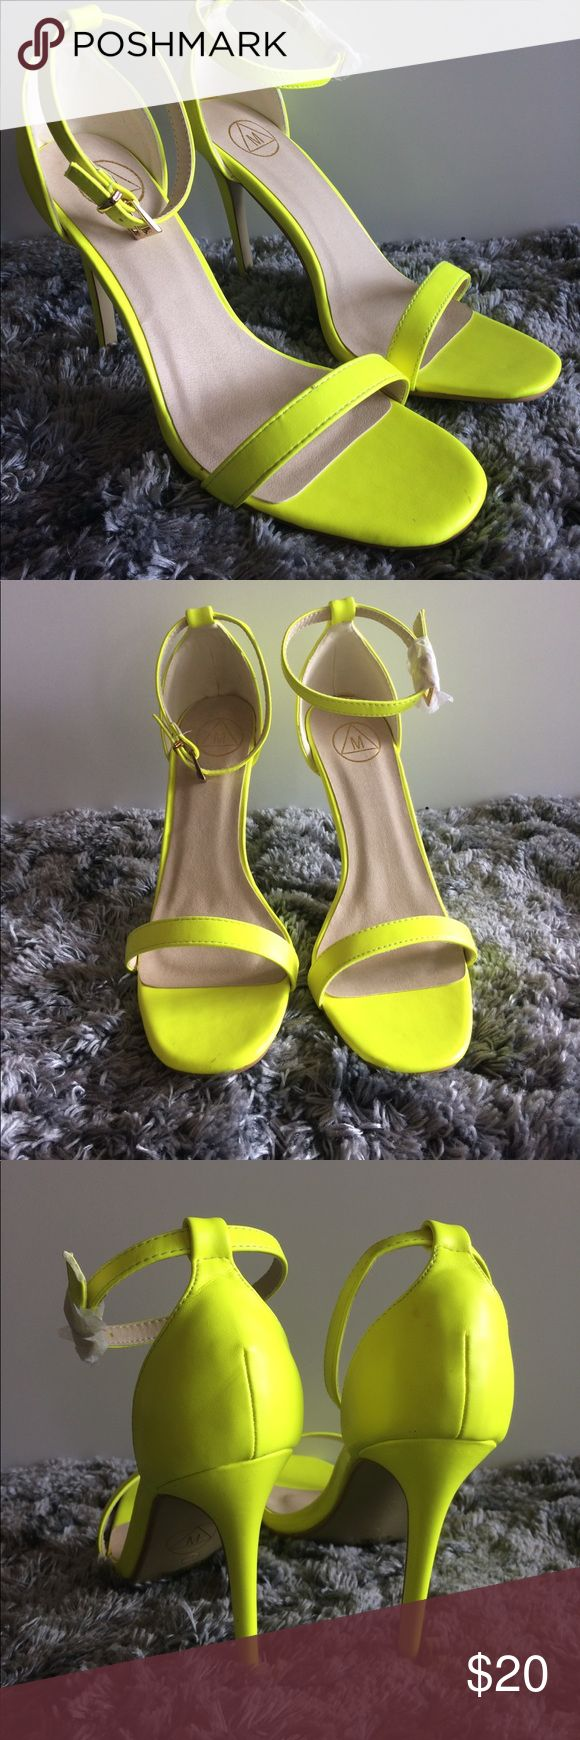 Misguided neon yellow heels 🌼Misguided neon yellow heels perfect for spring dress up or dress down with a pair of jeans.I love these ....well almost I bought them one size too large size 9.  These cuties need a new home. 🌼all offers welcomed 🌻 Shoes Heels